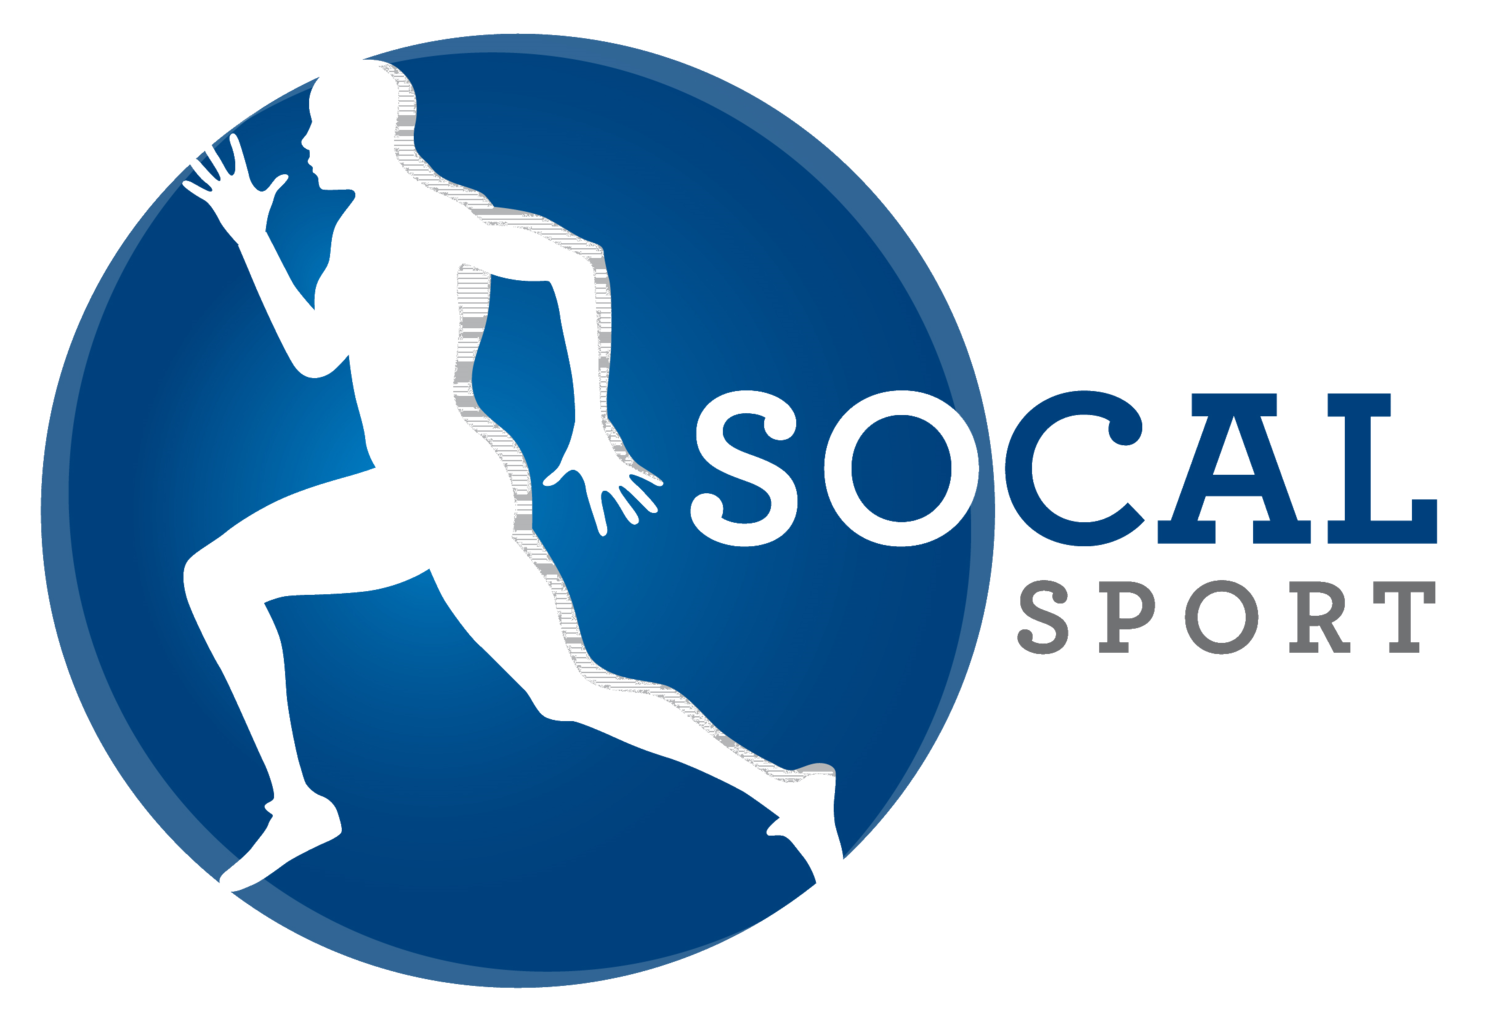 SoCalSport and Fitness Studio